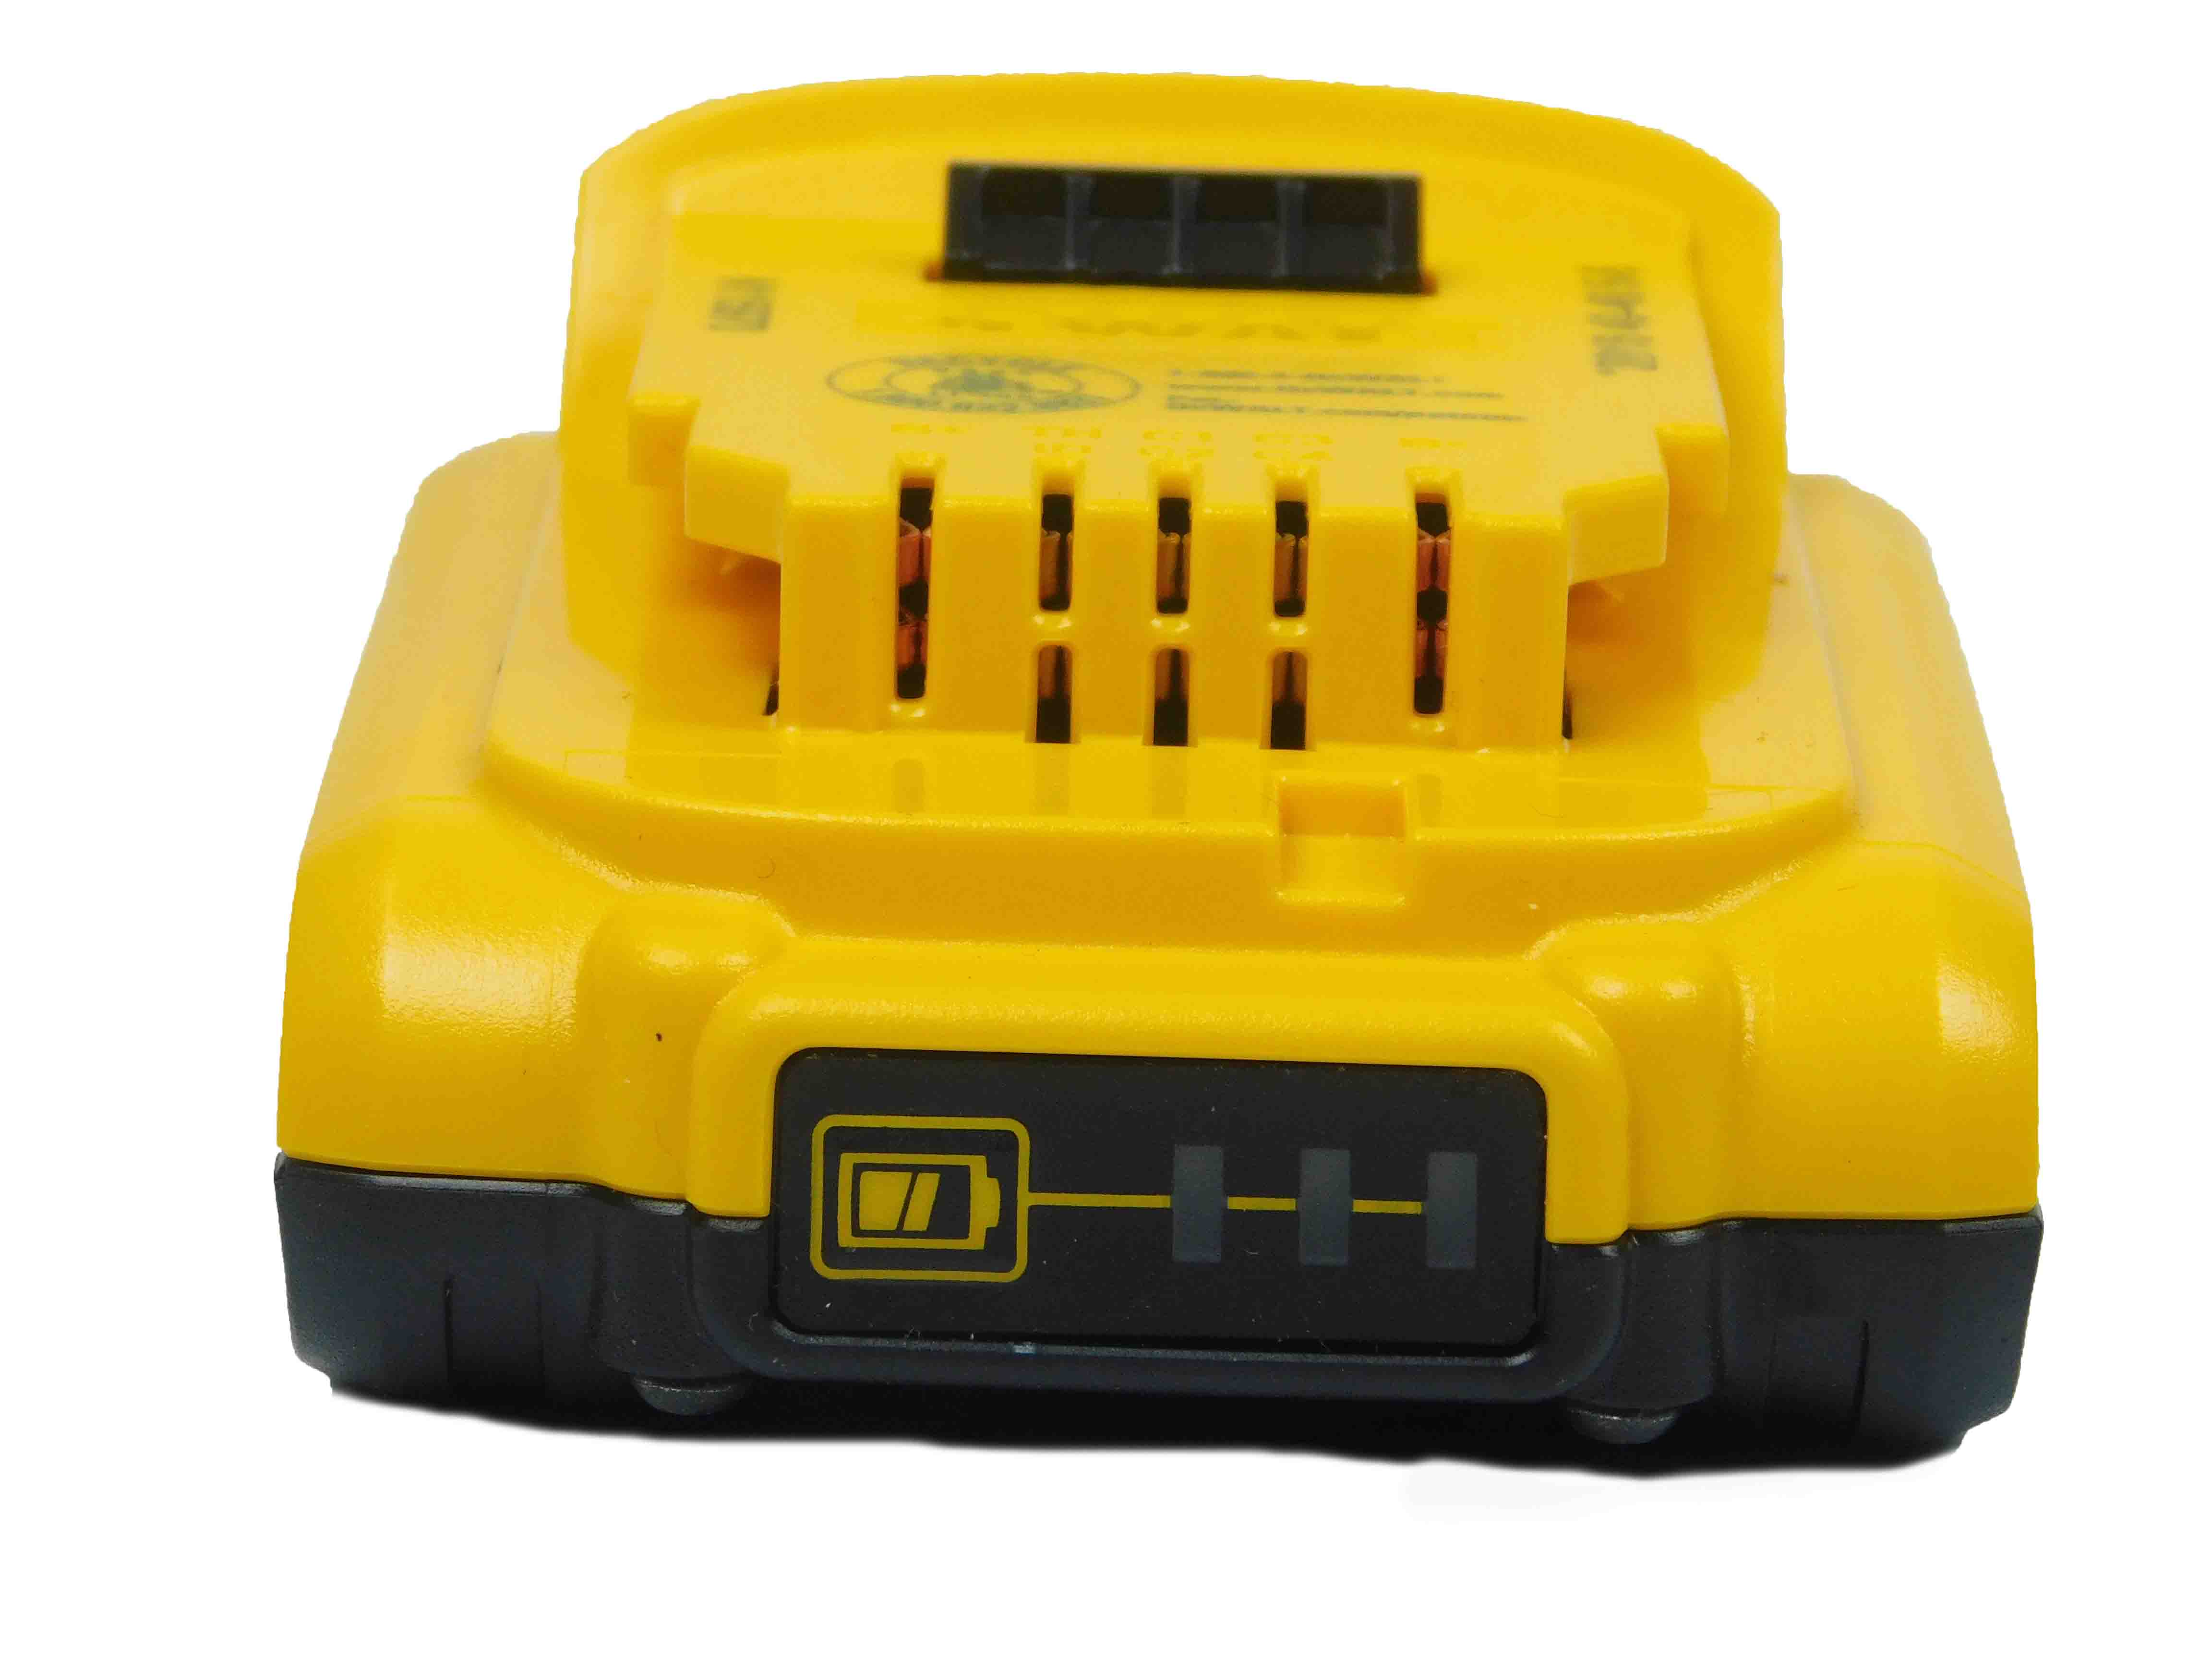 Dewalt-DCB203-20V-2-Ah-Lithium-Ion-Battery-Single-Pack-image-4